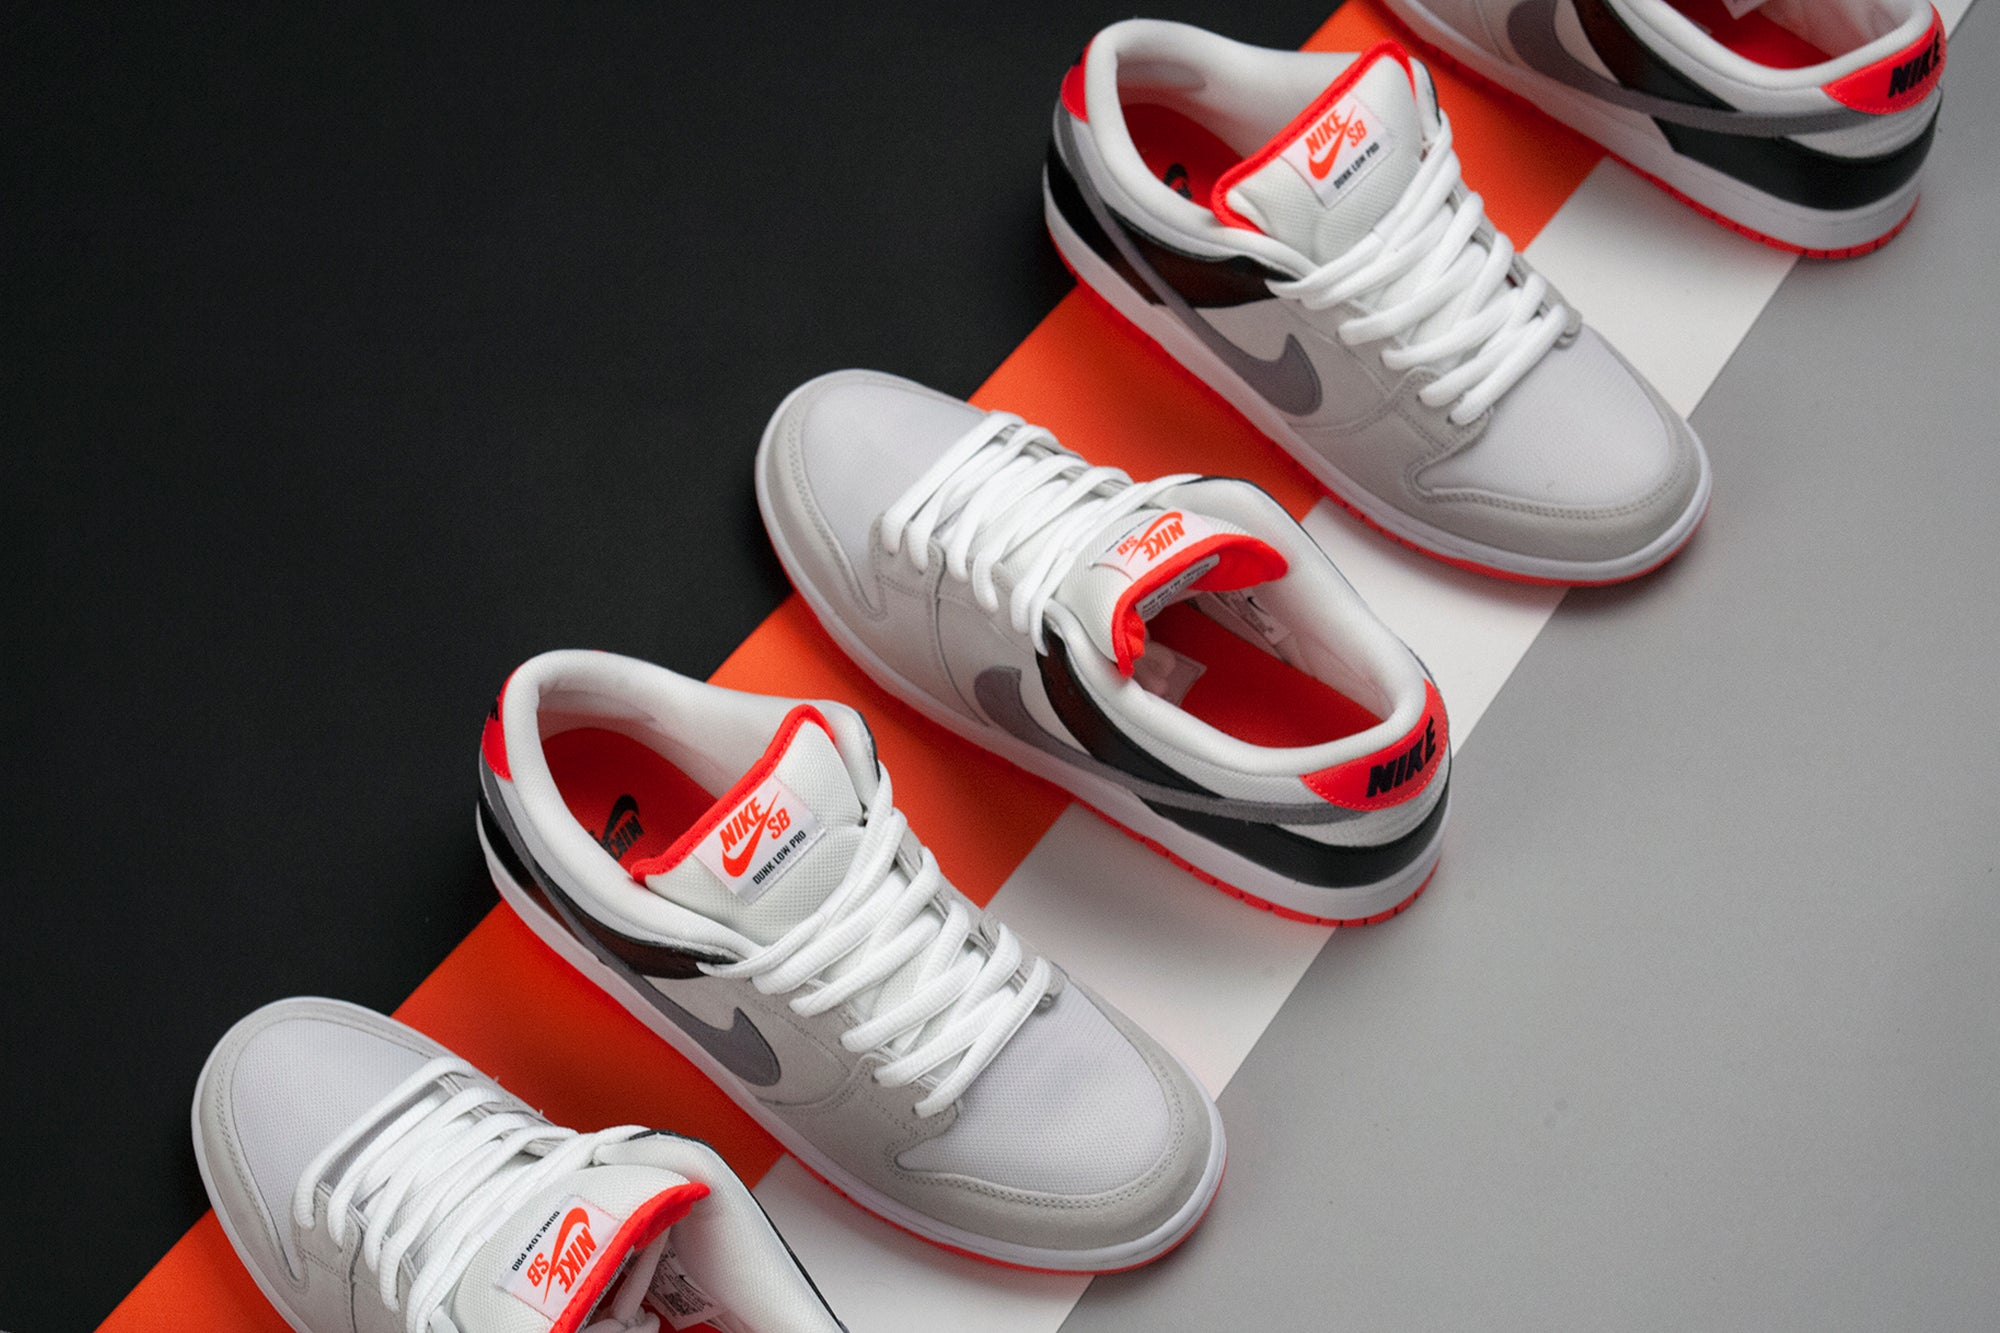 Nike_SB_Dunk_Low_Infared_Orange_Label_1